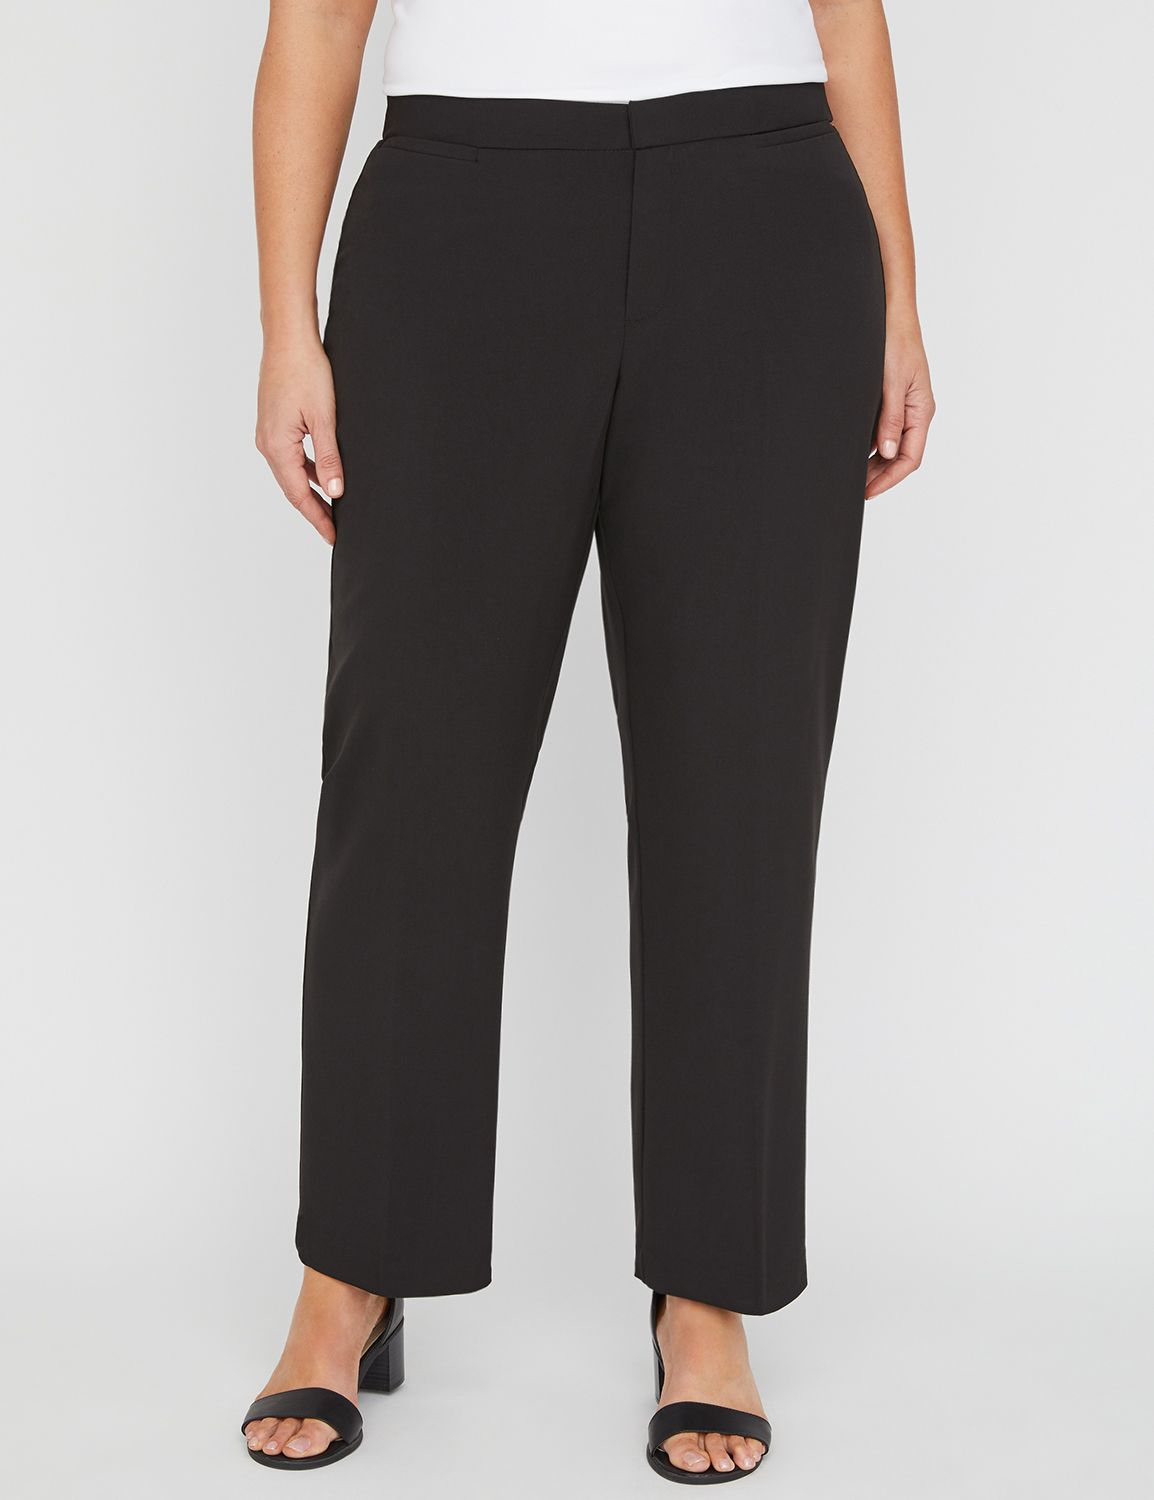 Right Fit Pant (Moderately Curvy) Right Fit Pant (Moderately Curvy) MP-300009907